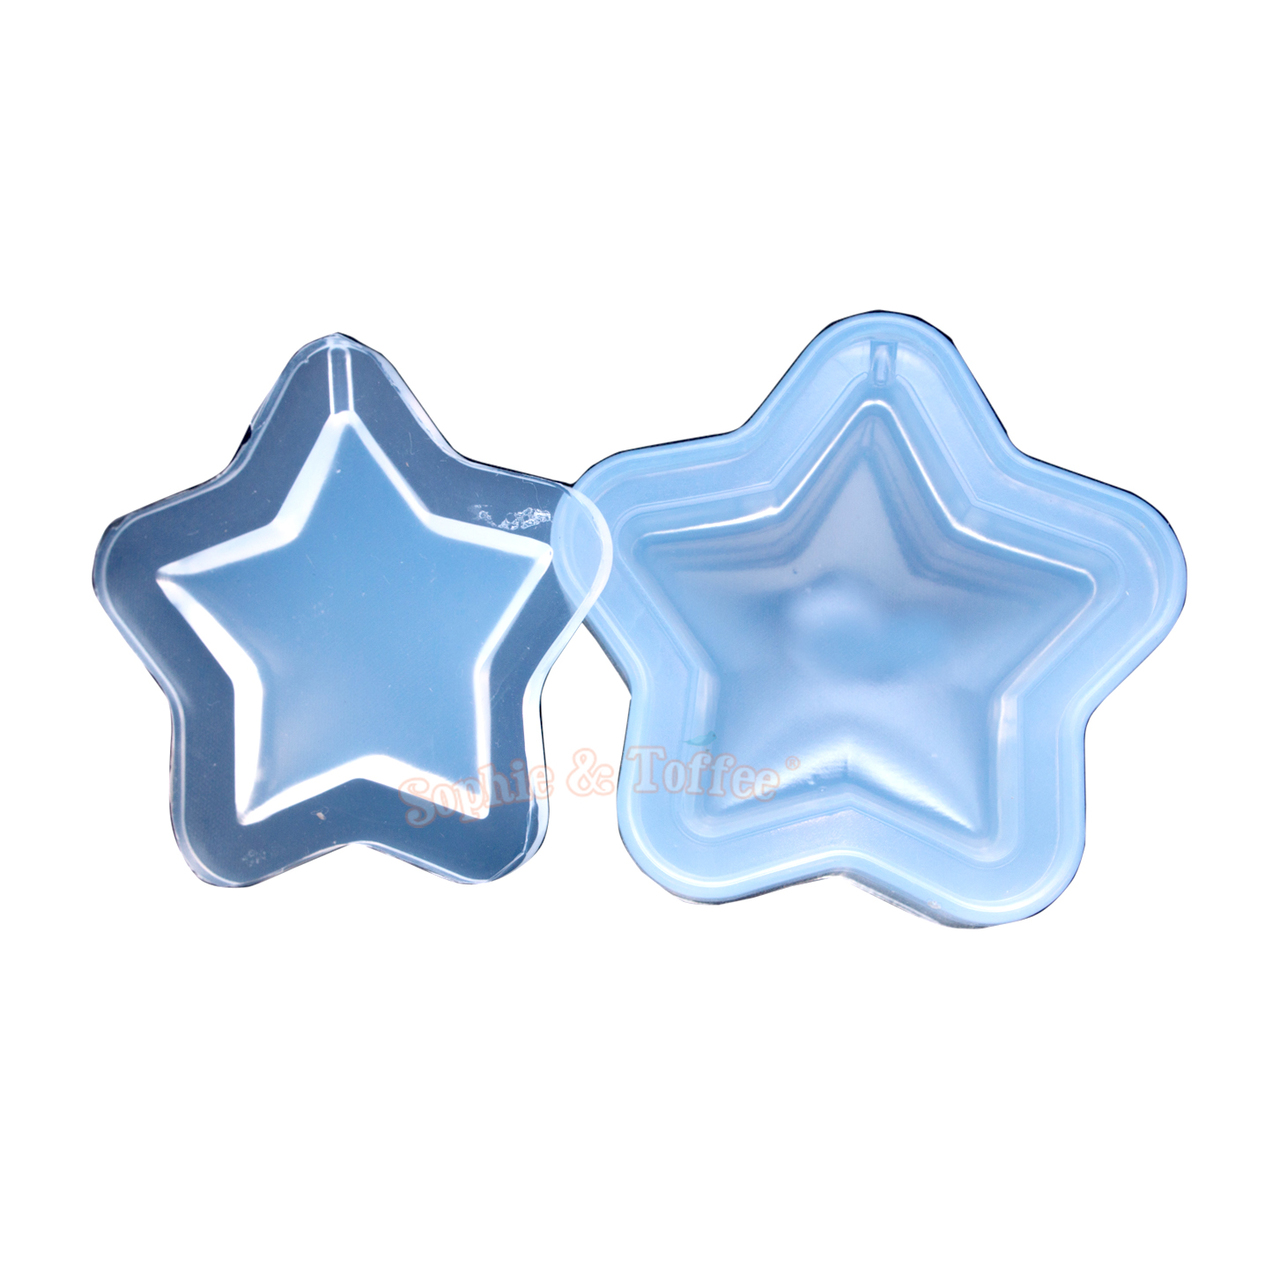 Star Shaker UV Resin Silicone Mold (High Quality)